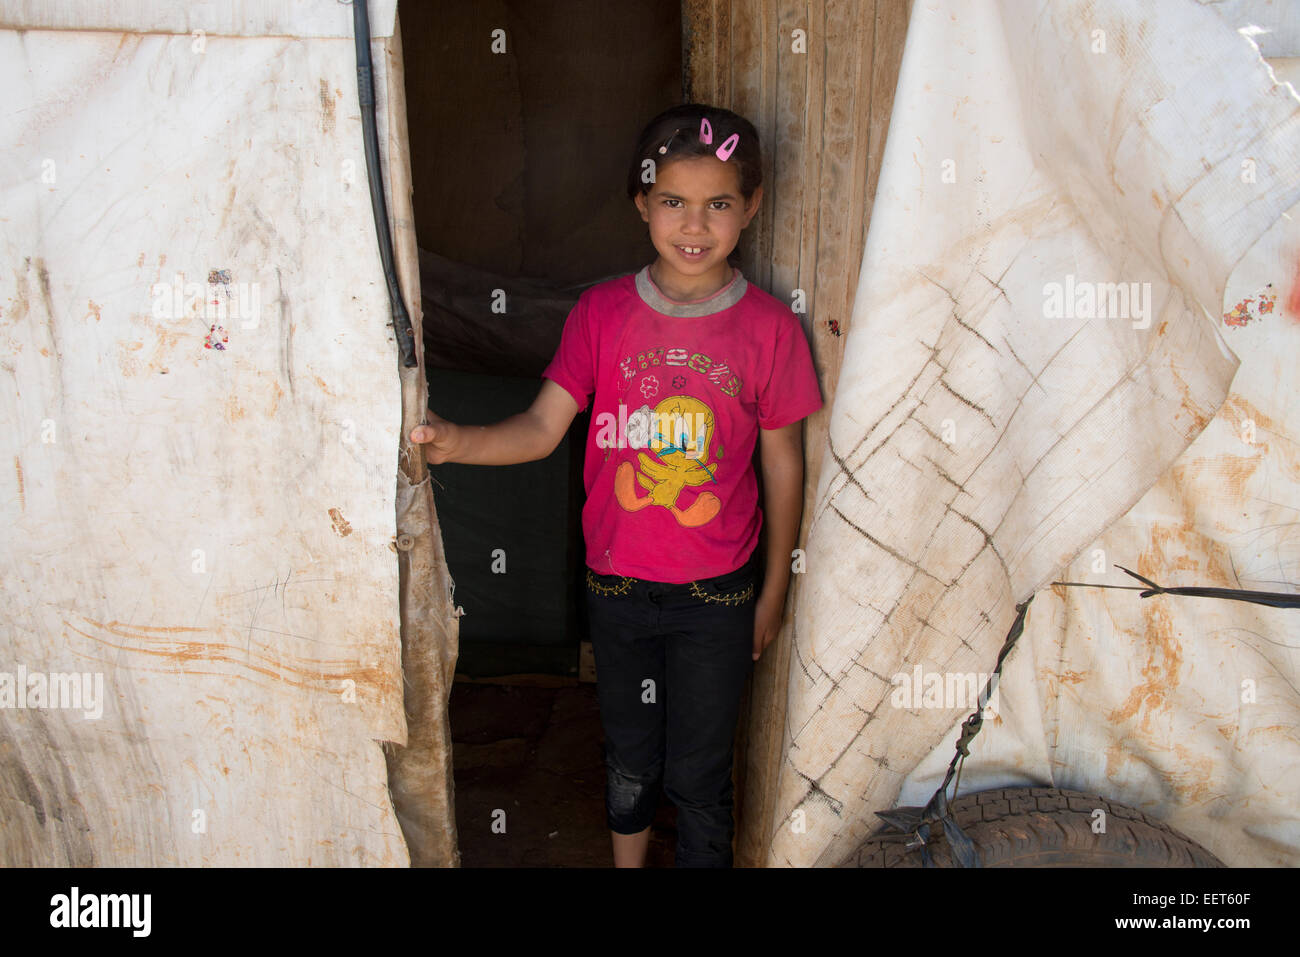 Refugee girl Lebanon - Stock Image